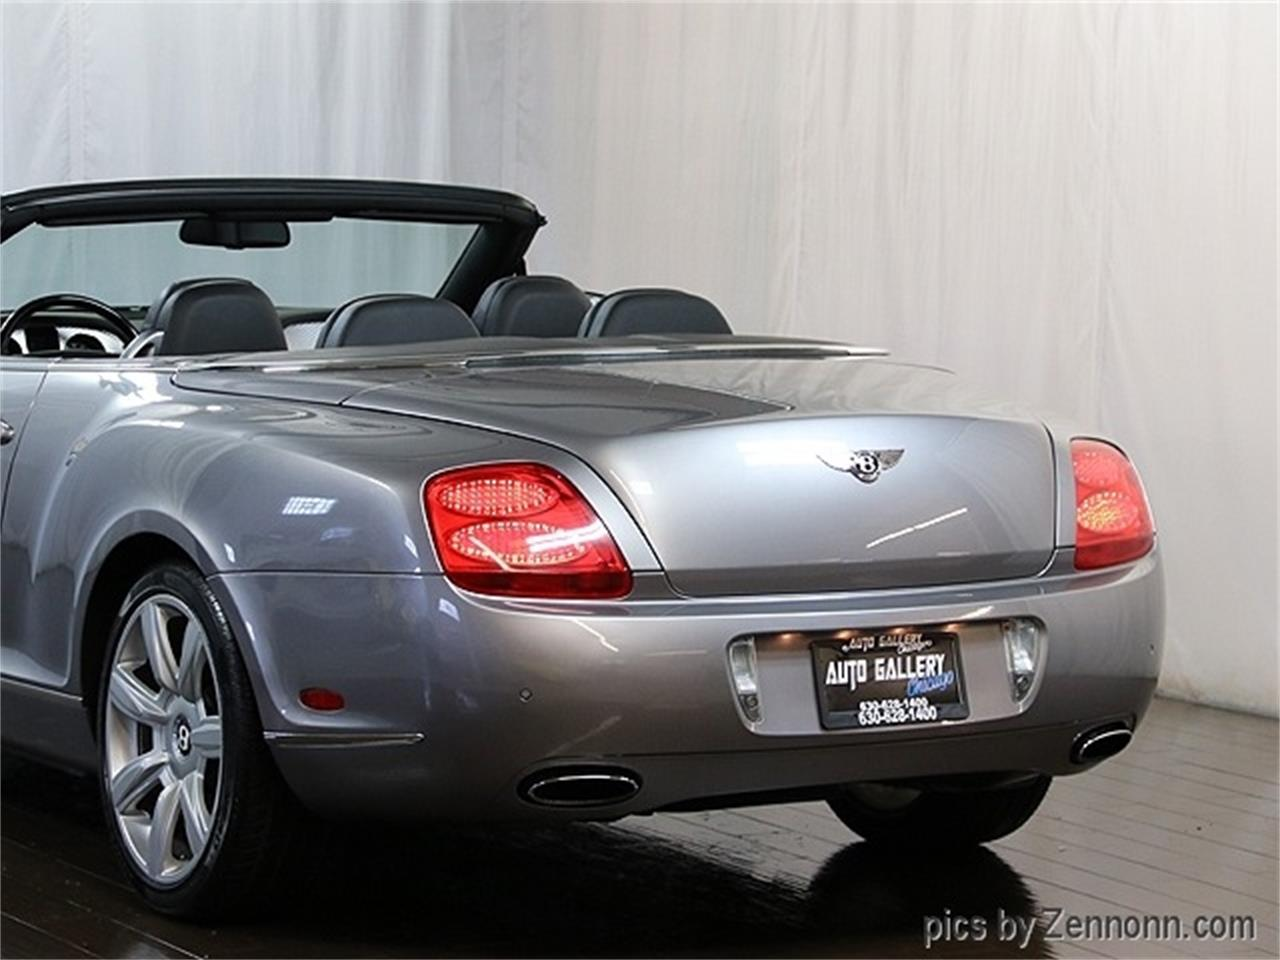 2007 Bentley Continental GTC (CC-1276445) for sale in Addison, Illinois